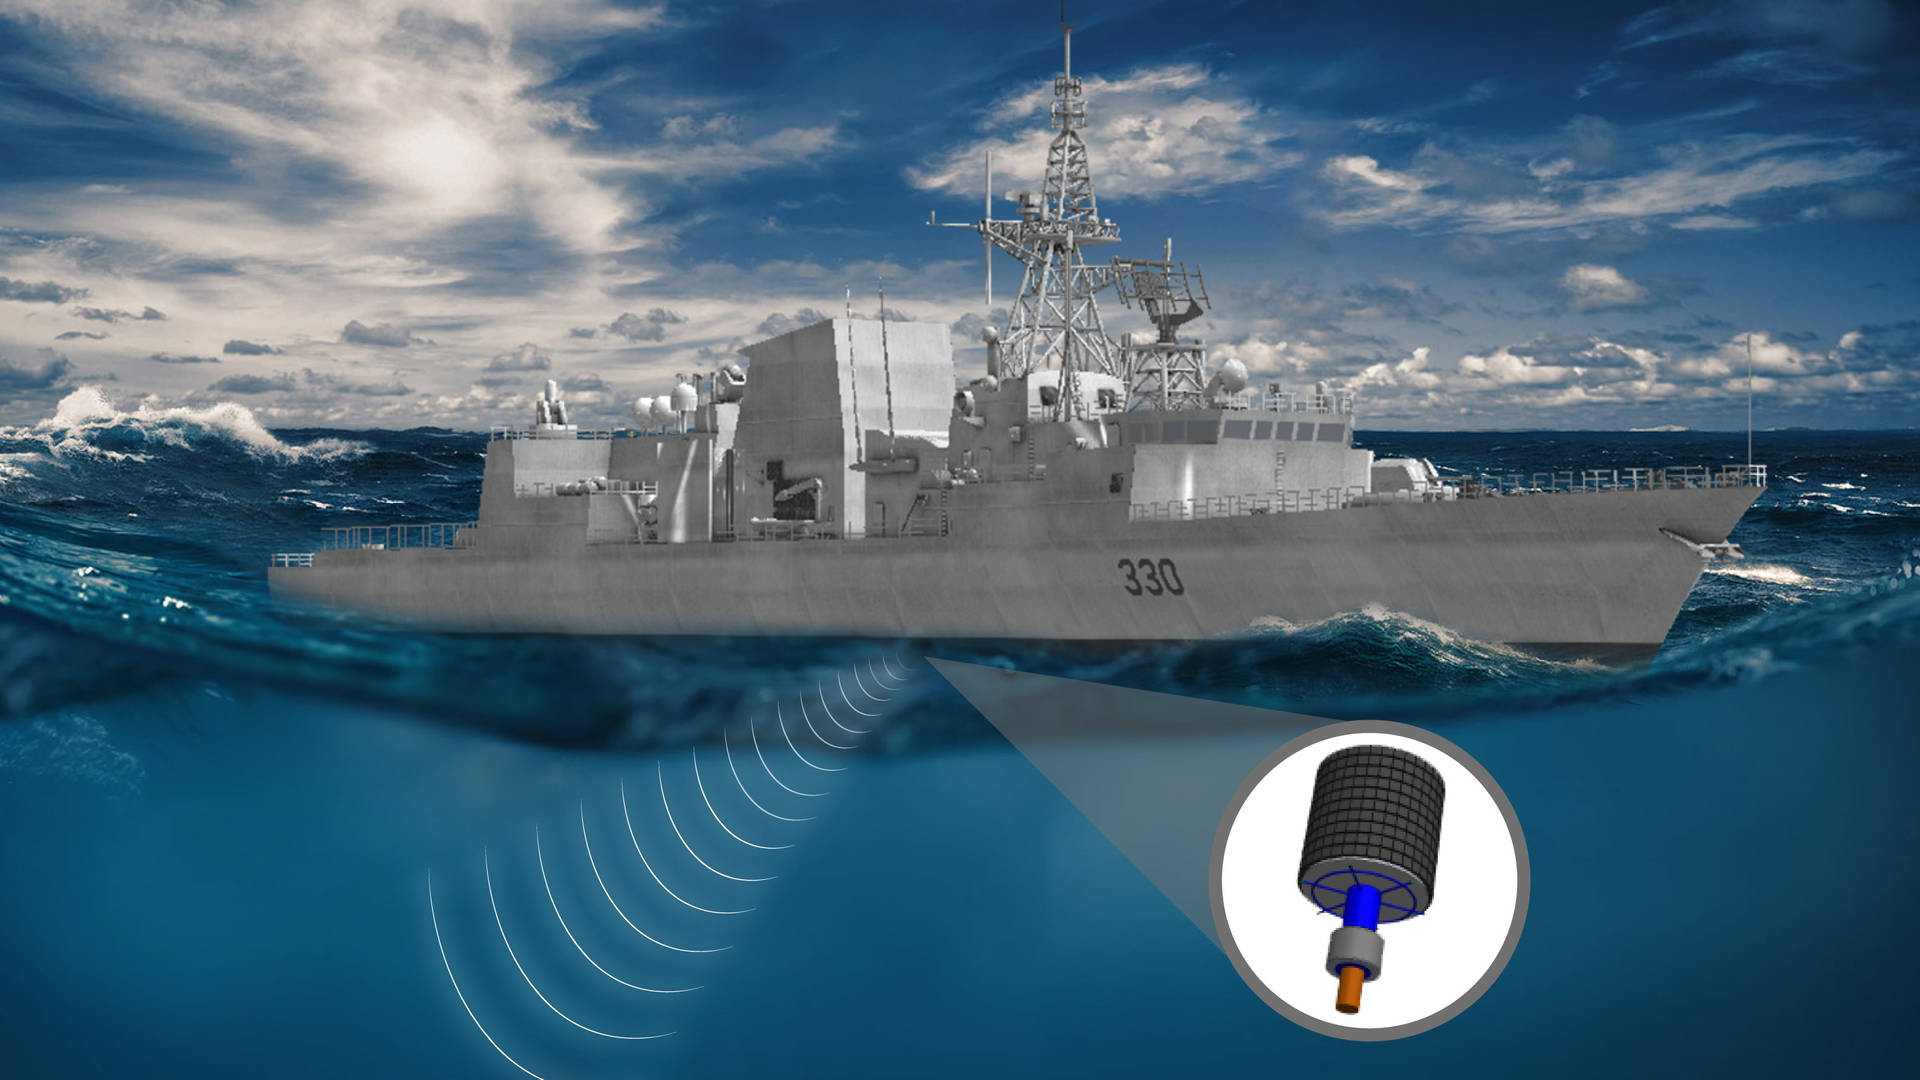 Hull Mounted Sonar General Dynamics Mission Systems Canada